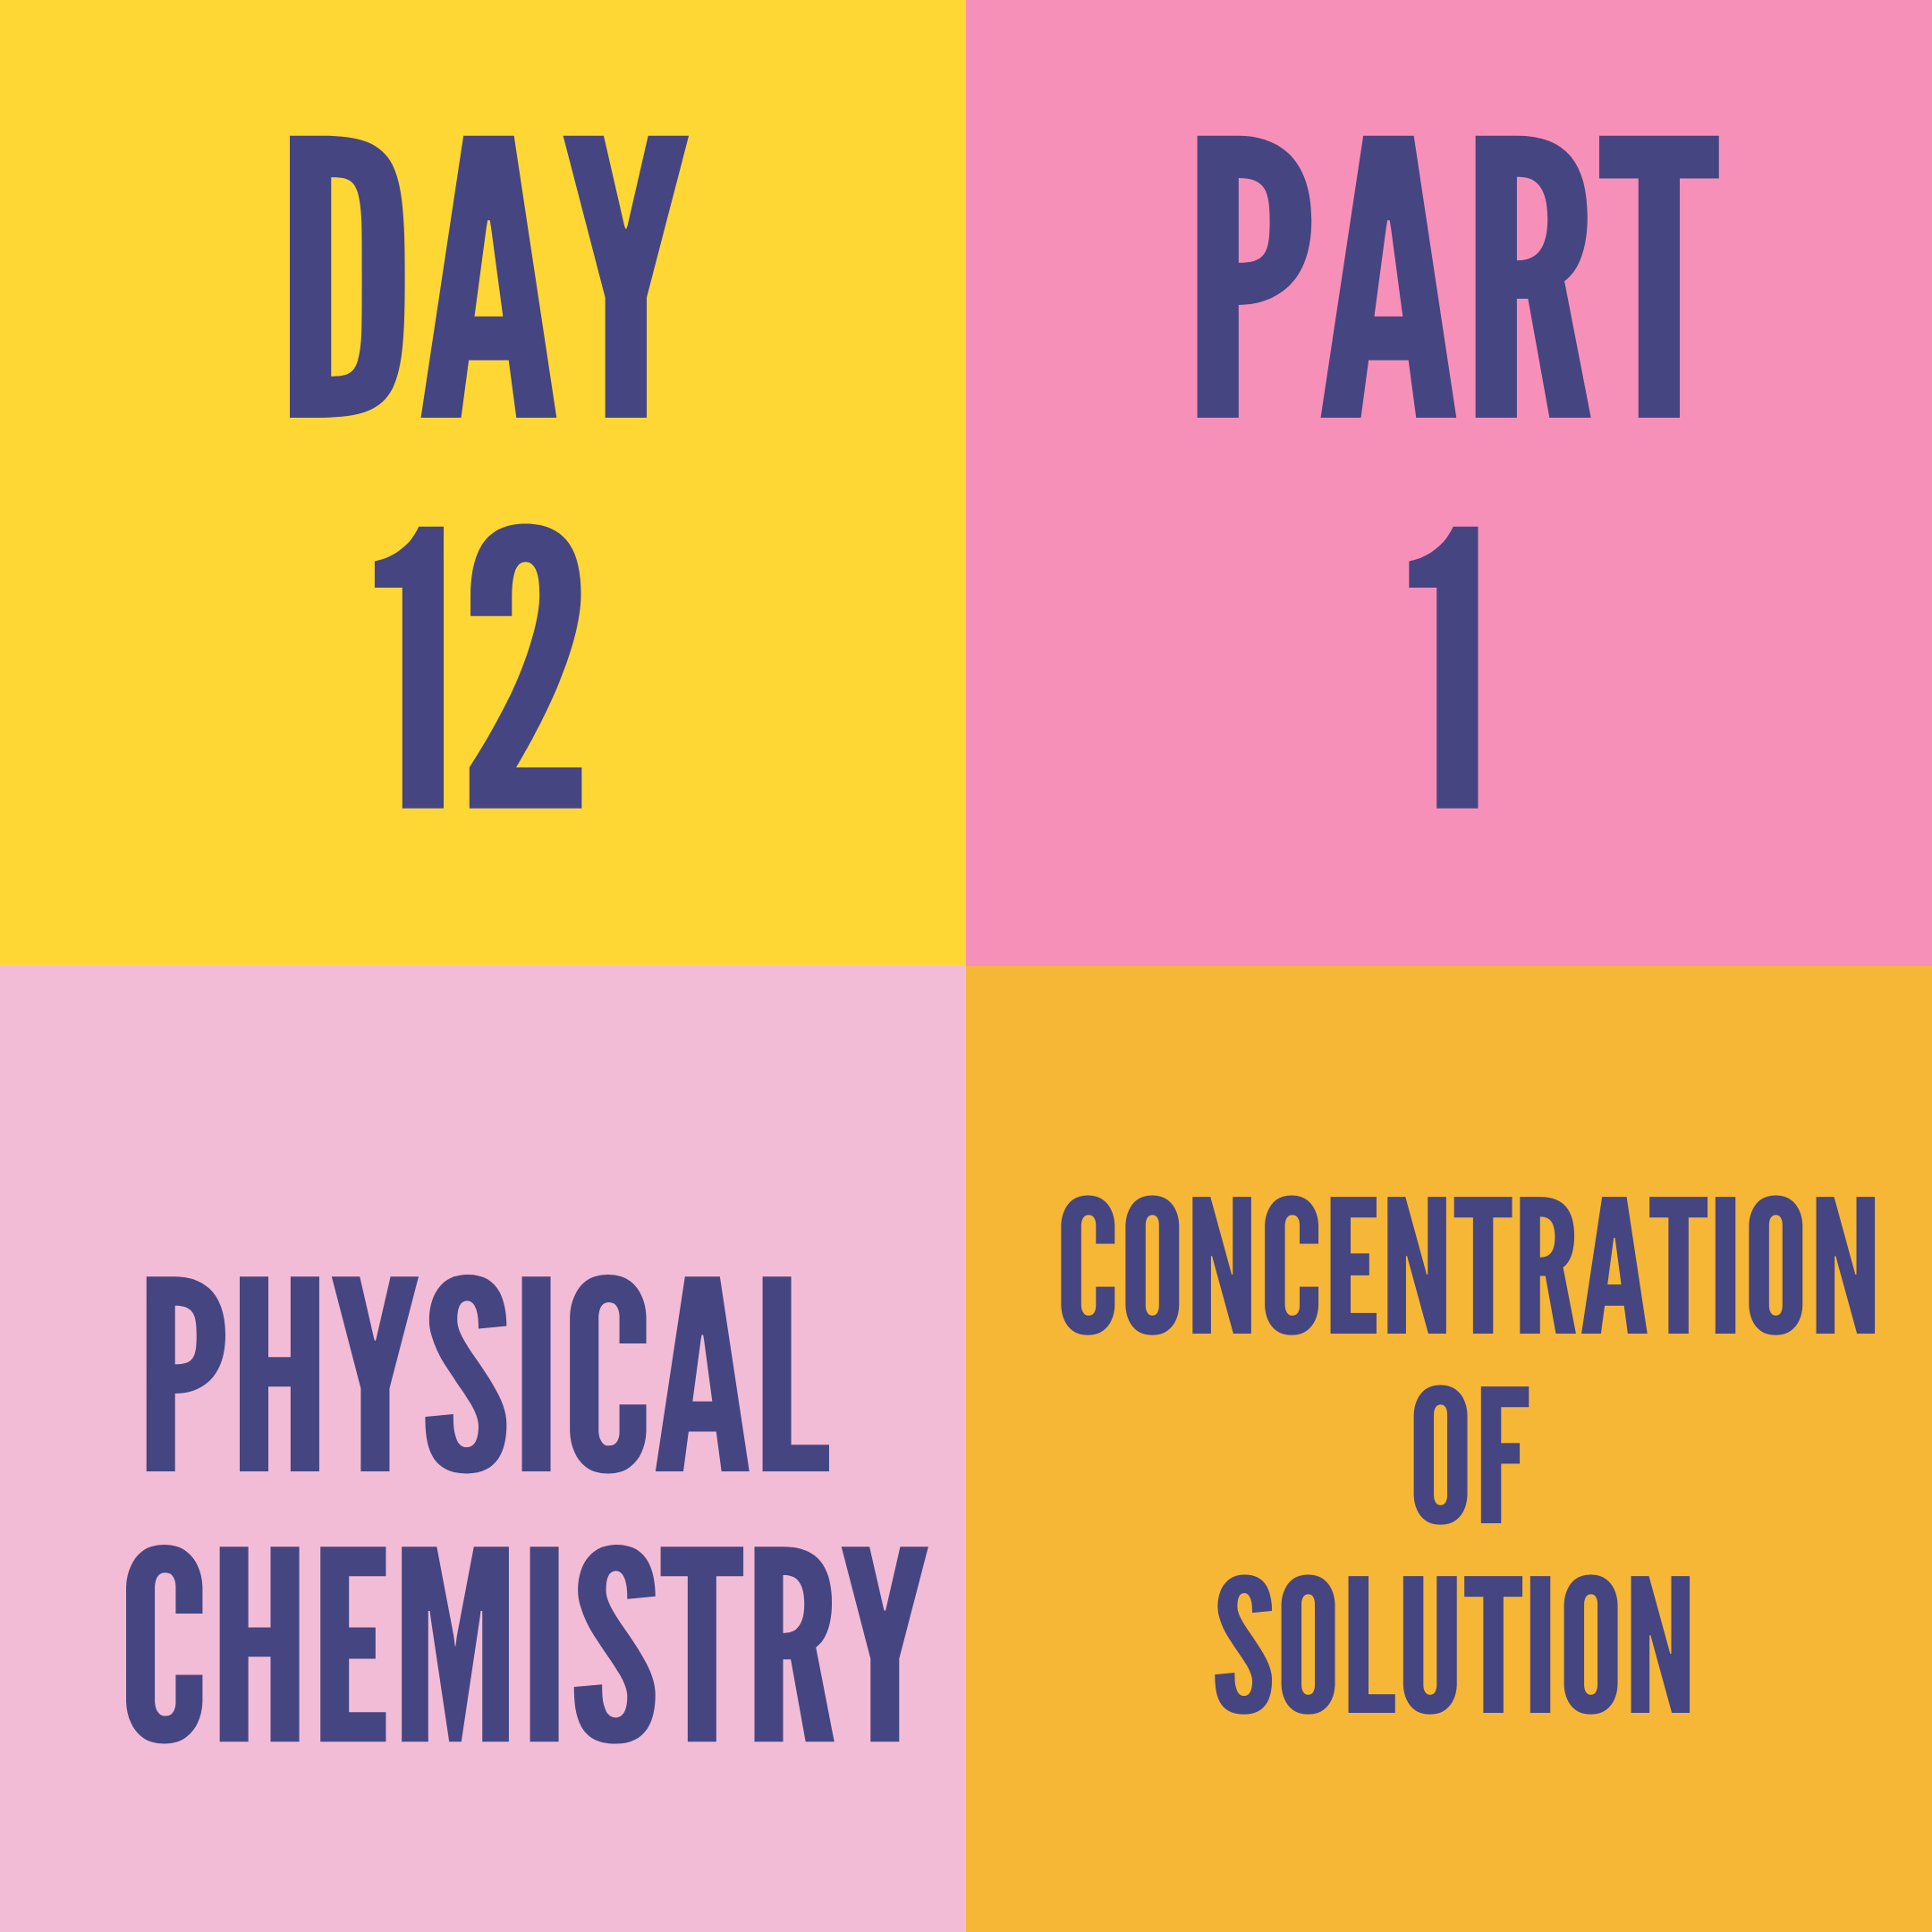 DAY-12 PART-1 CONCENTRATION OF SOLUTION